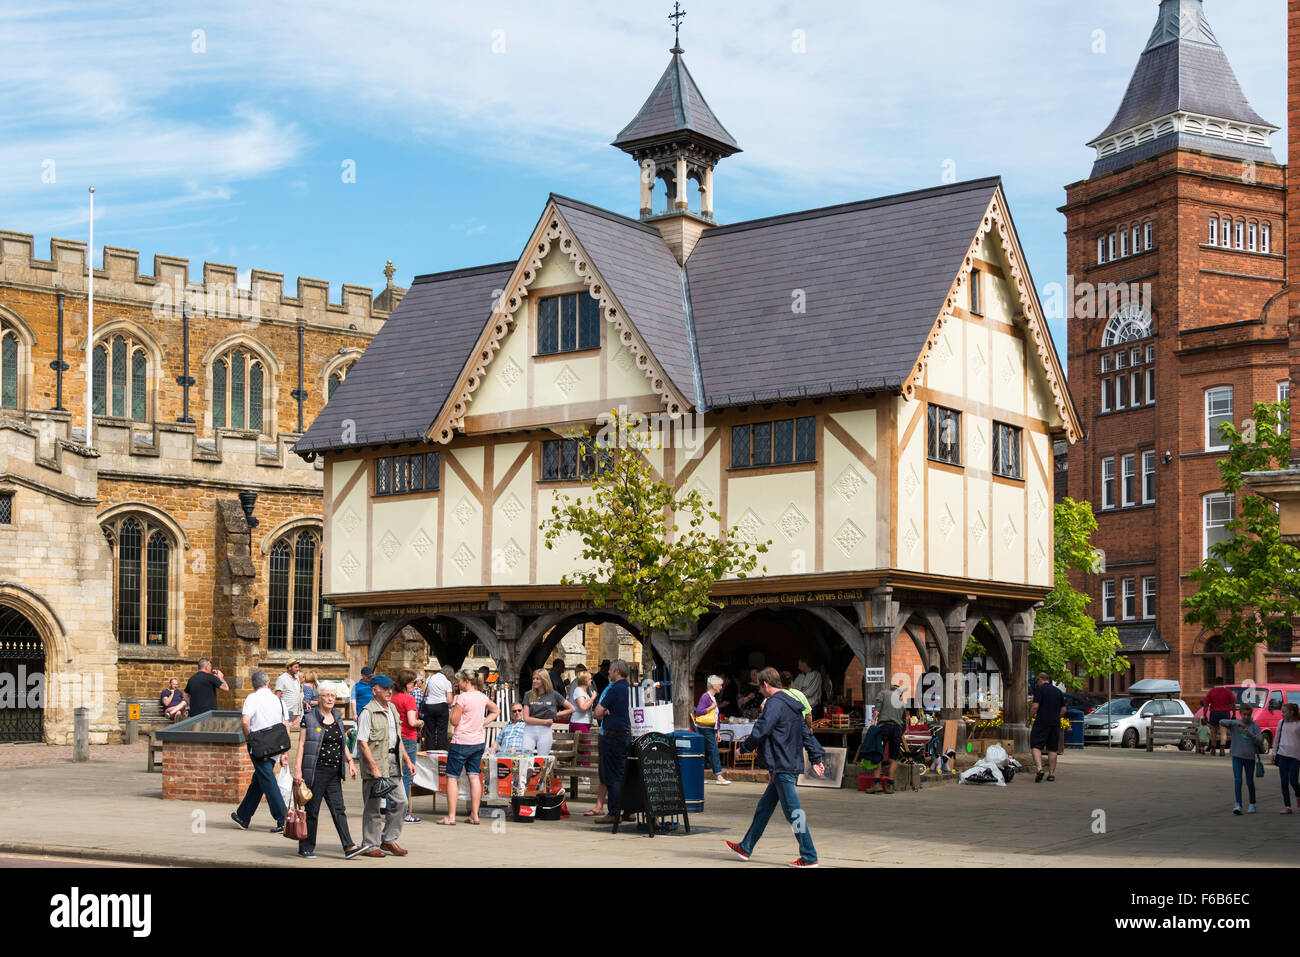 17th Century The Old Grammar School, Church Square, Market Harborough, Leicestershire, England, United Kingdom - Stock Image